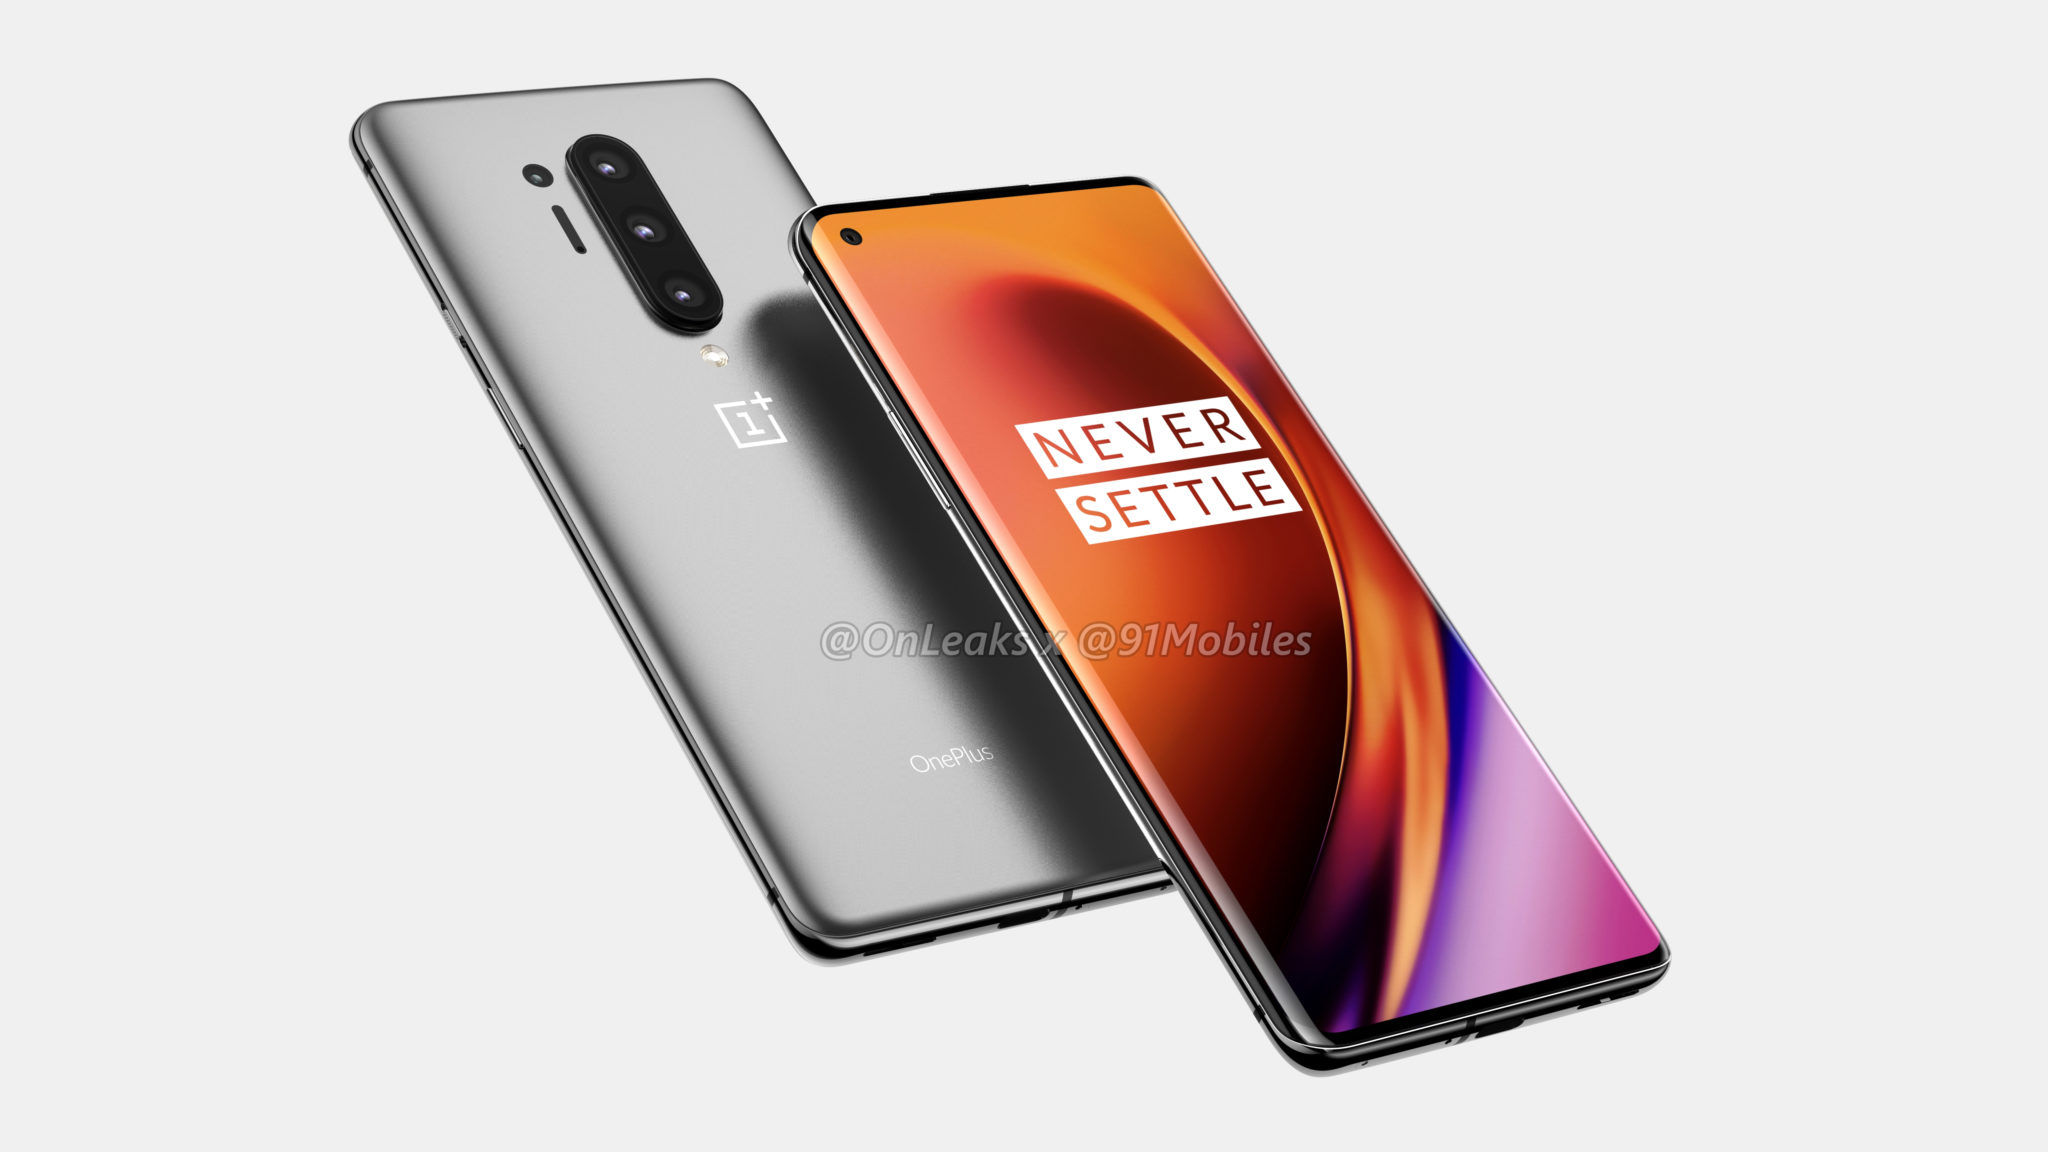 render image of the upcoming flagship phone-the OnePlus 8 Pro